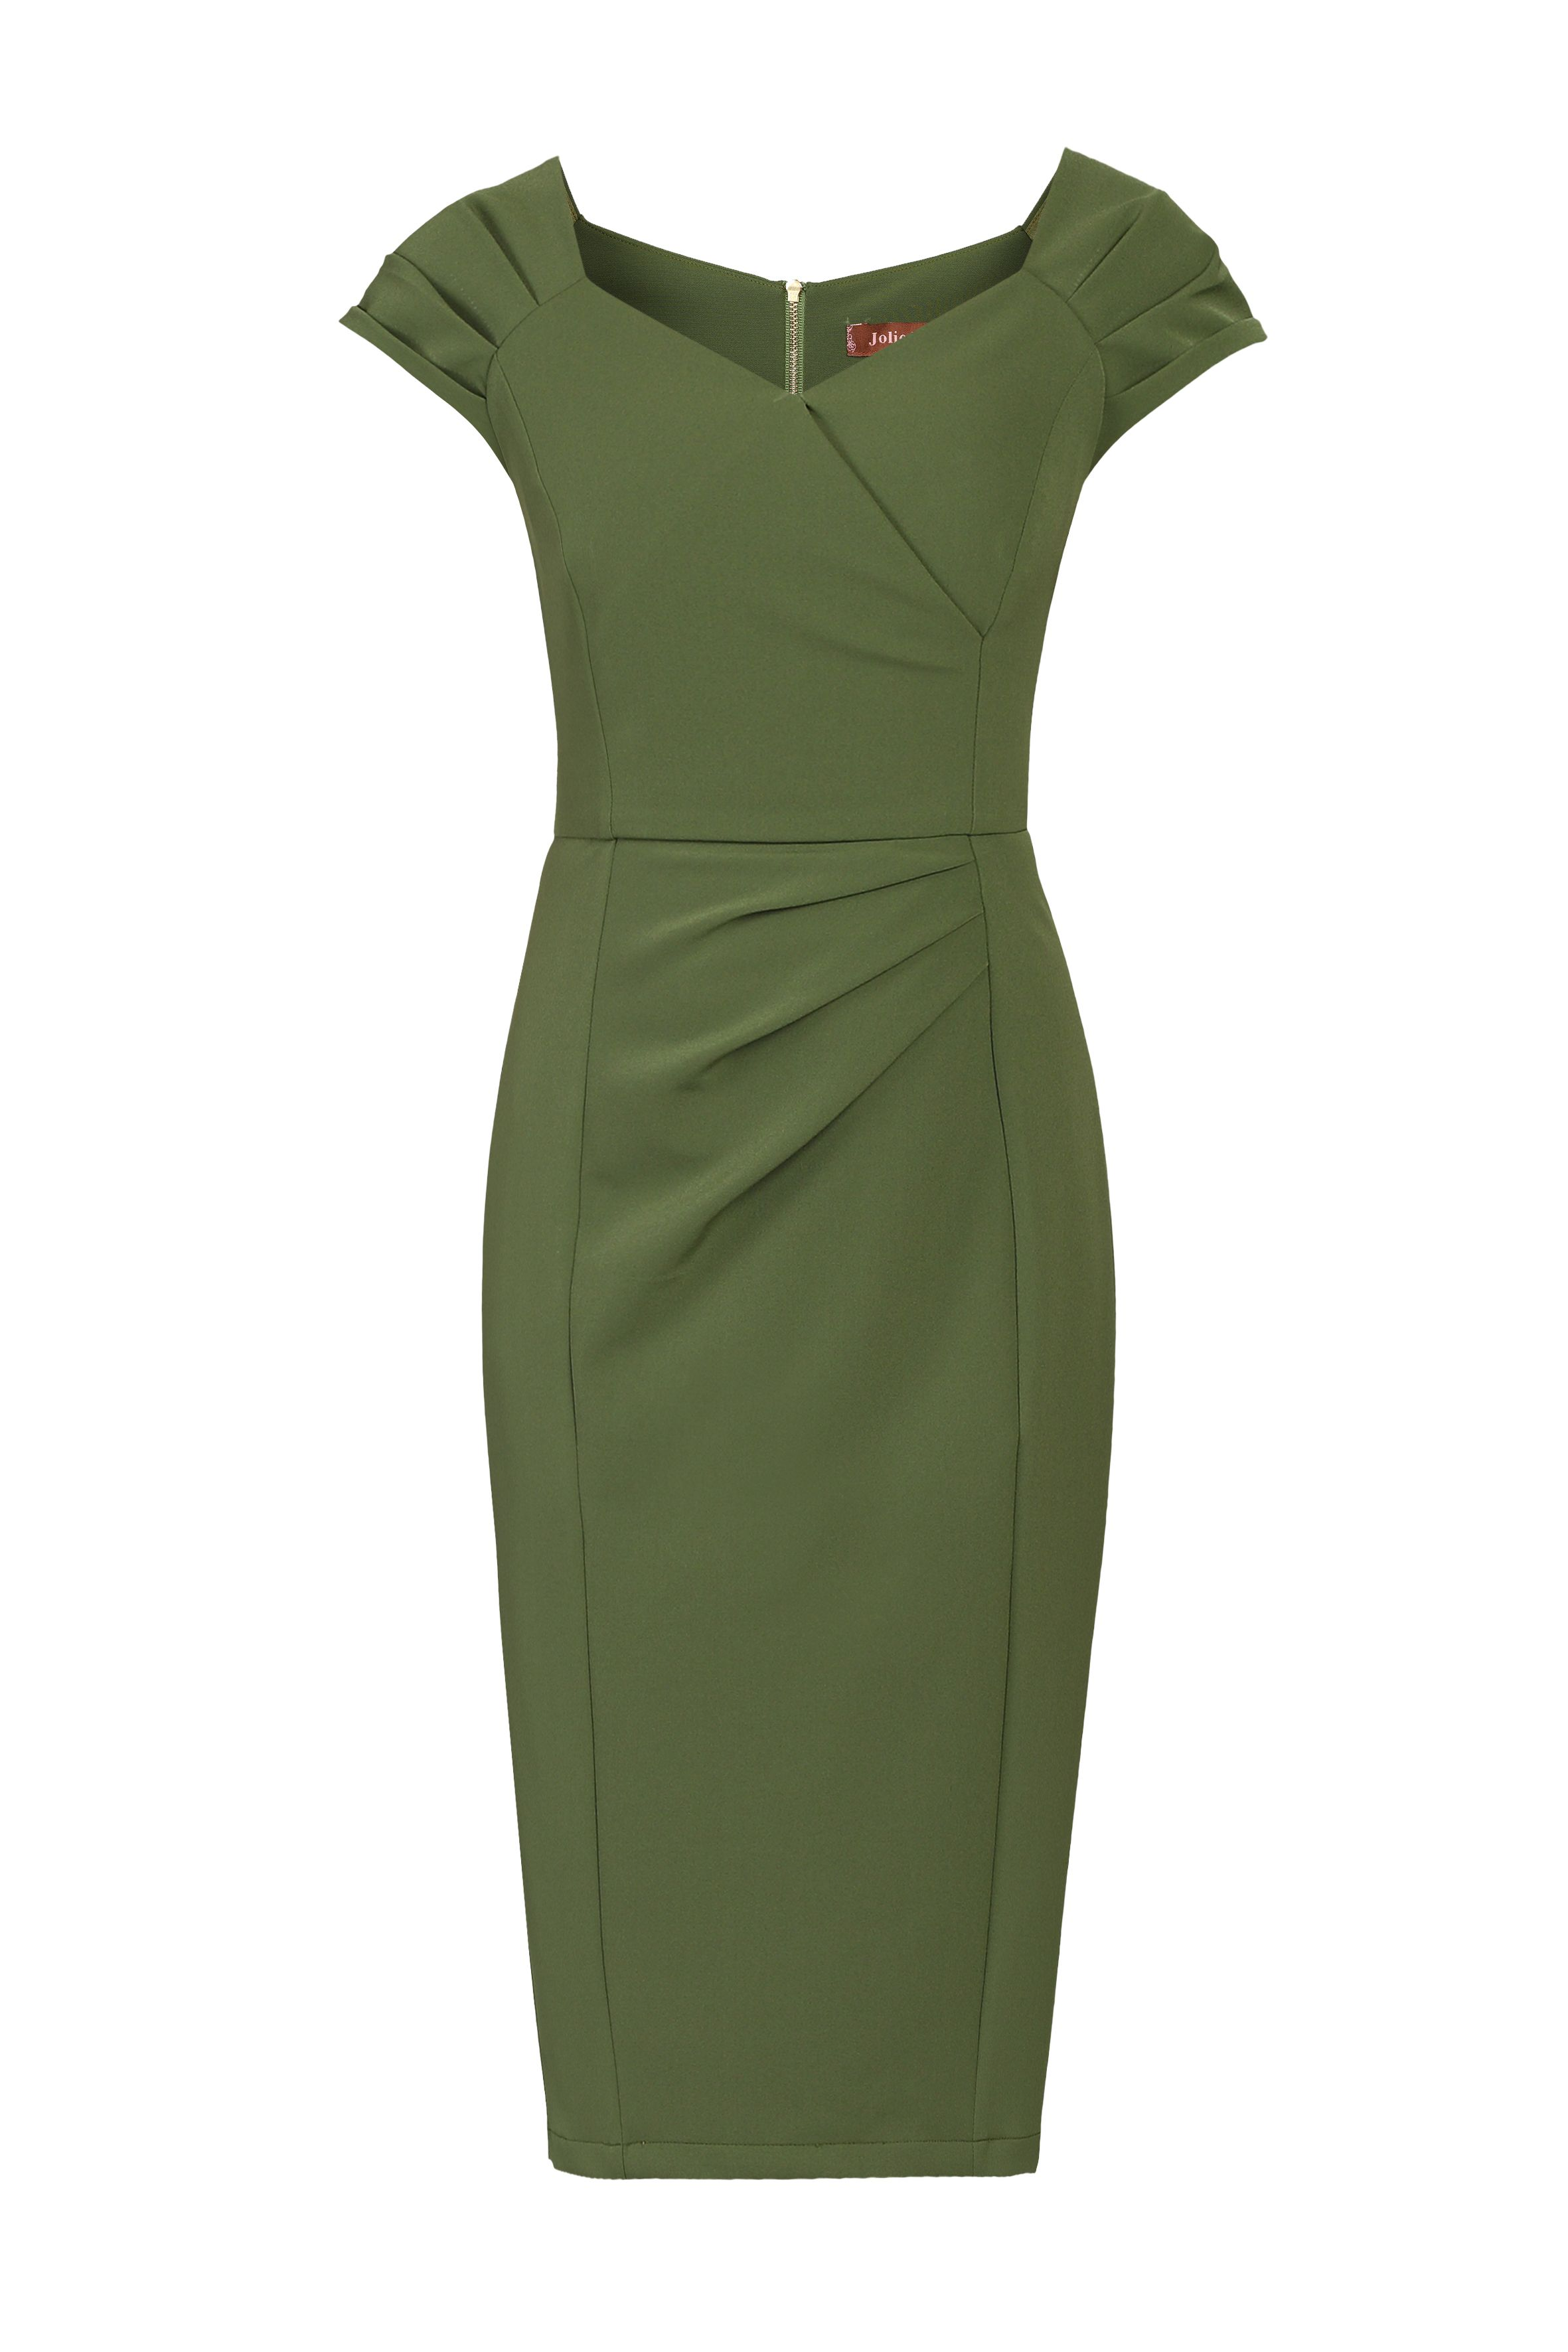 Jolie Moi Crossover Front Ruched Dress, Green